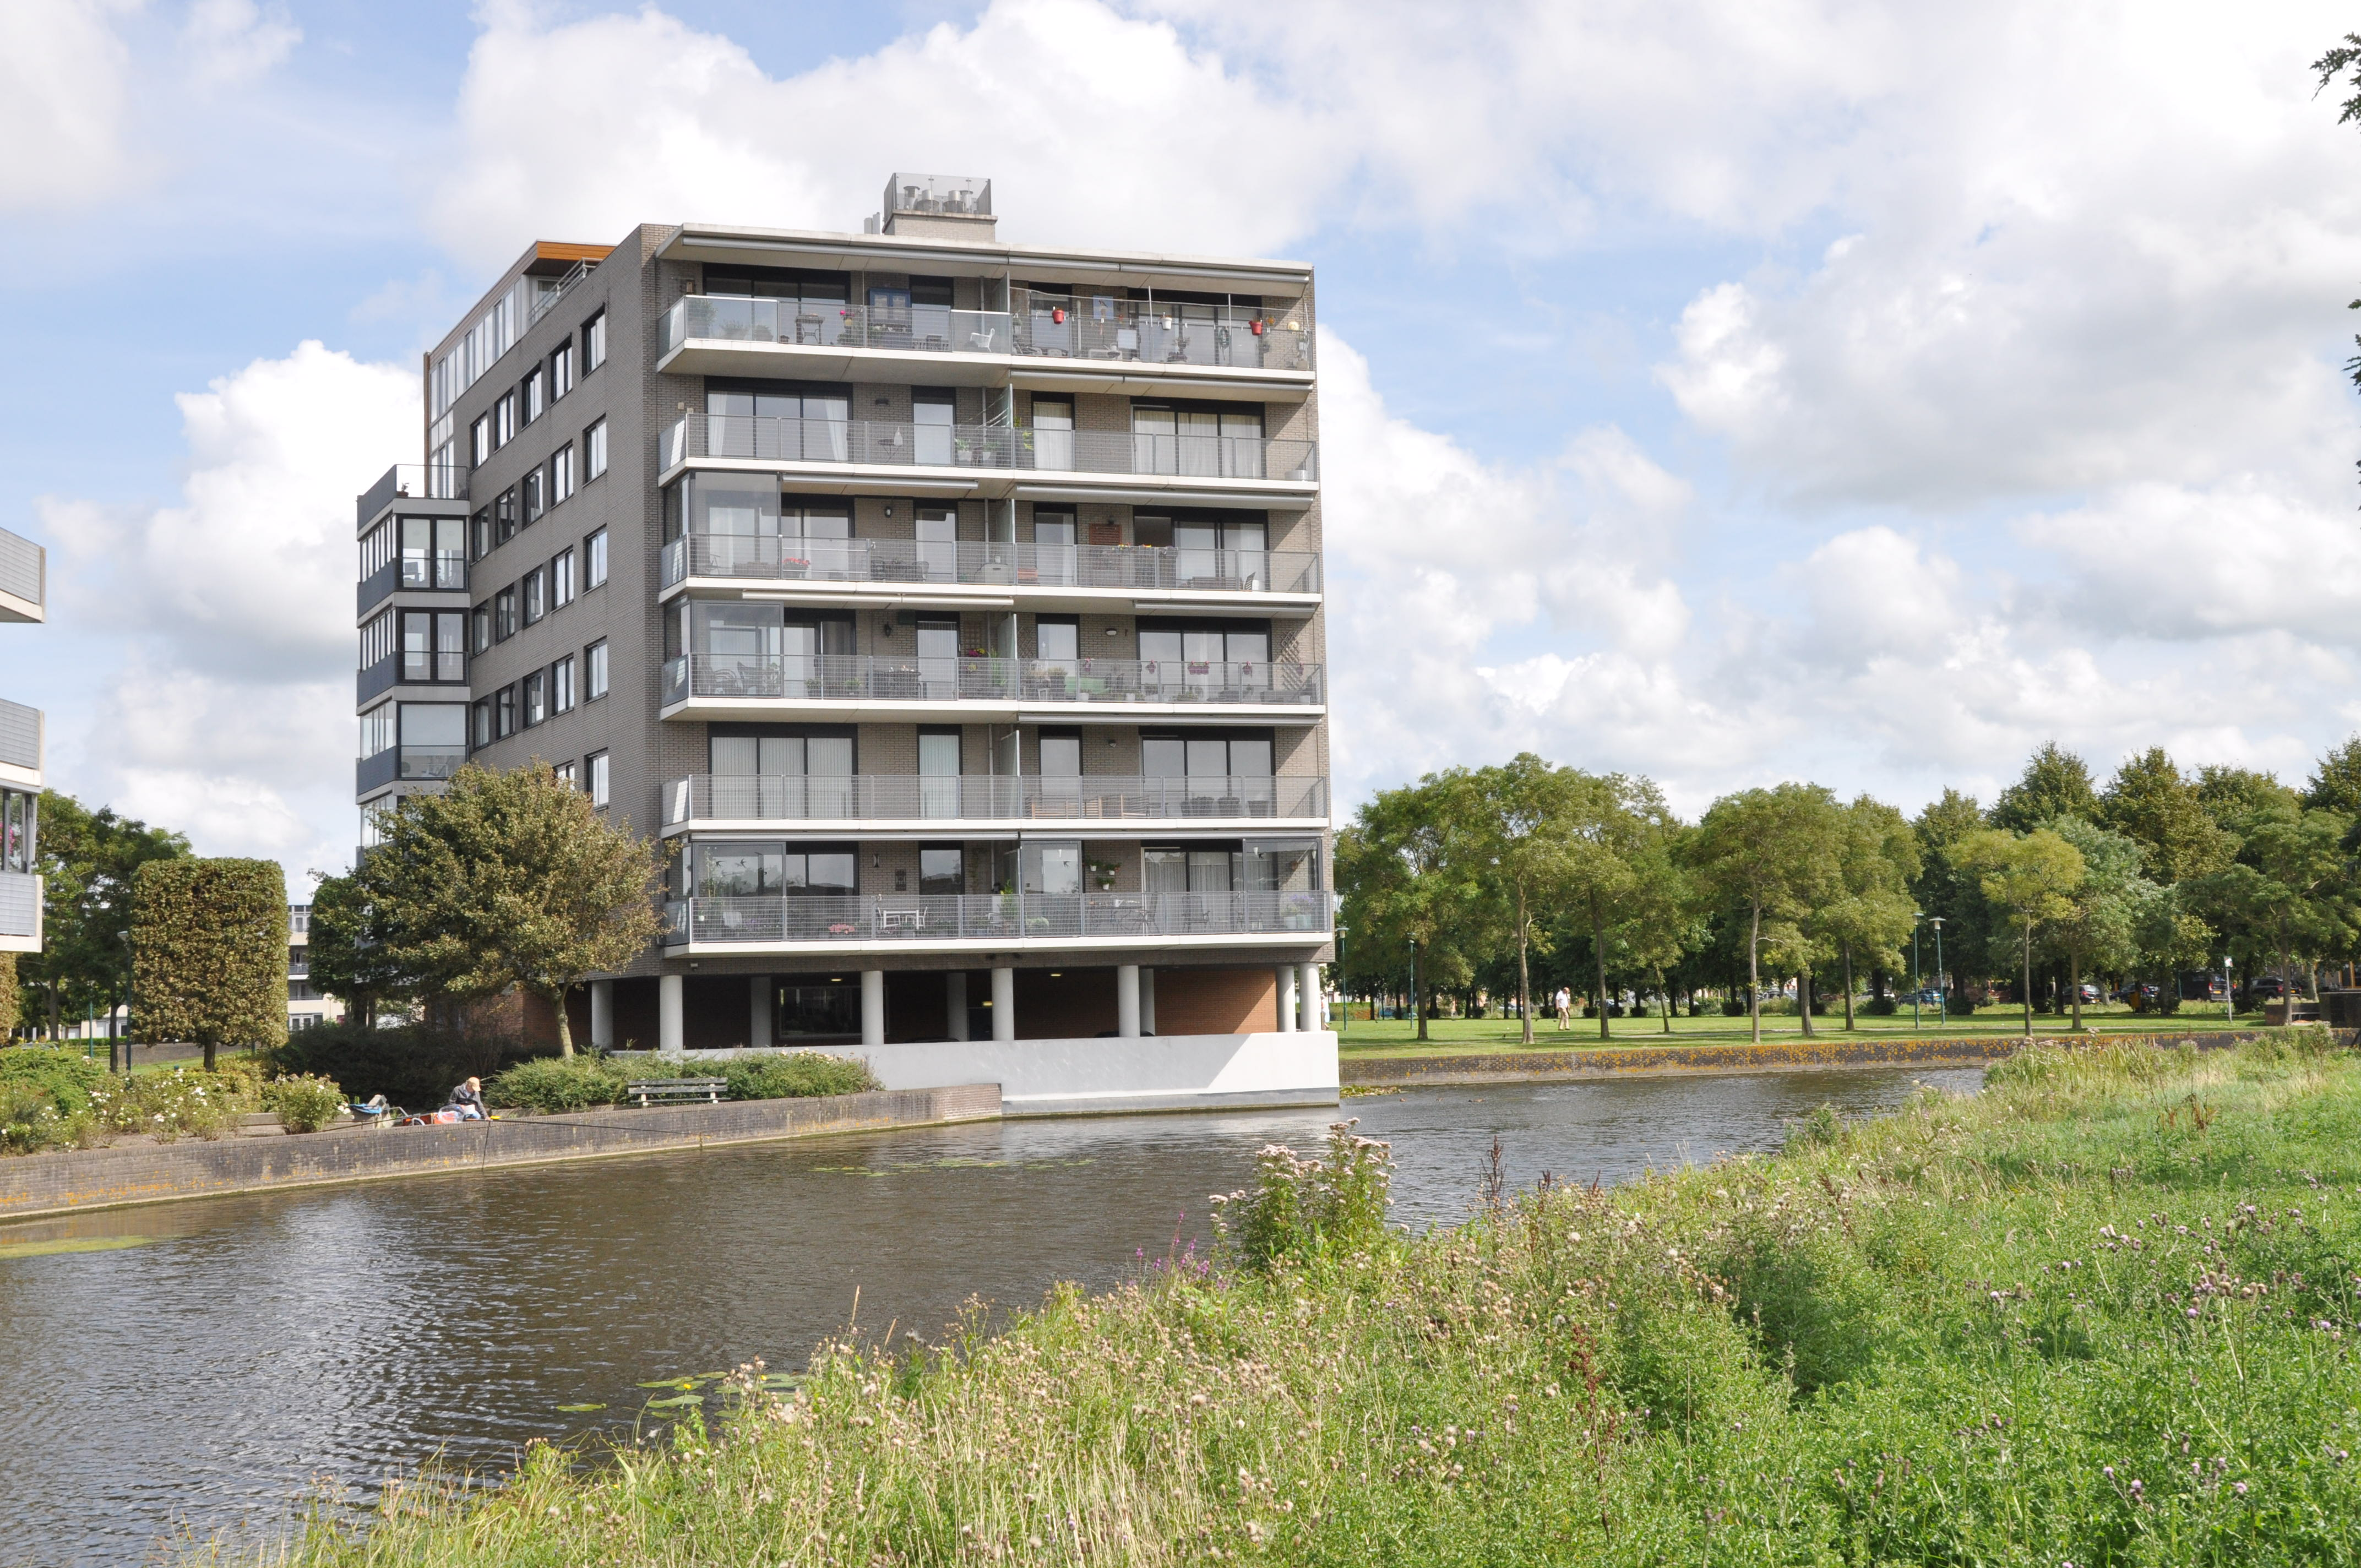 Mien Ruyspark, Oegstgeest